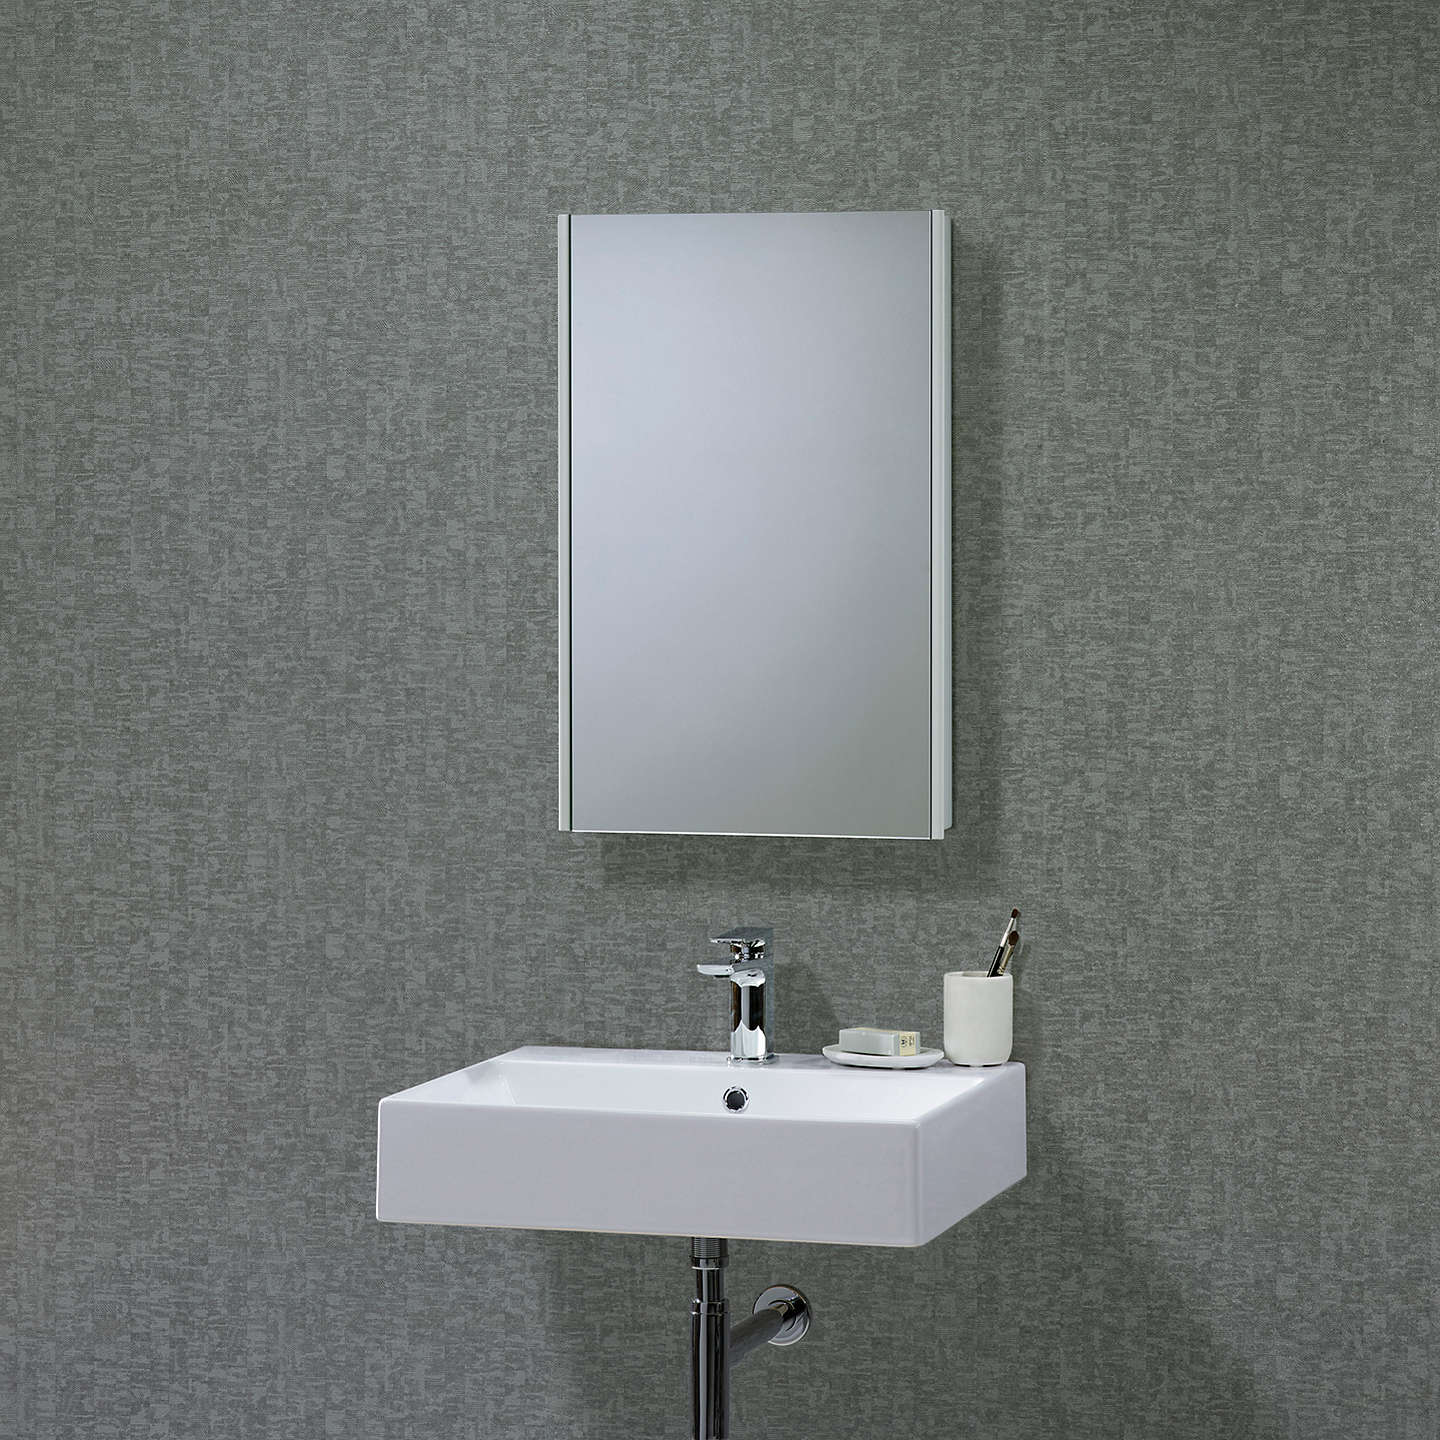 Roper Rhodes Limit Slimline Single Bathroom Cabinet With Double-Sided Mirror At John Lewis